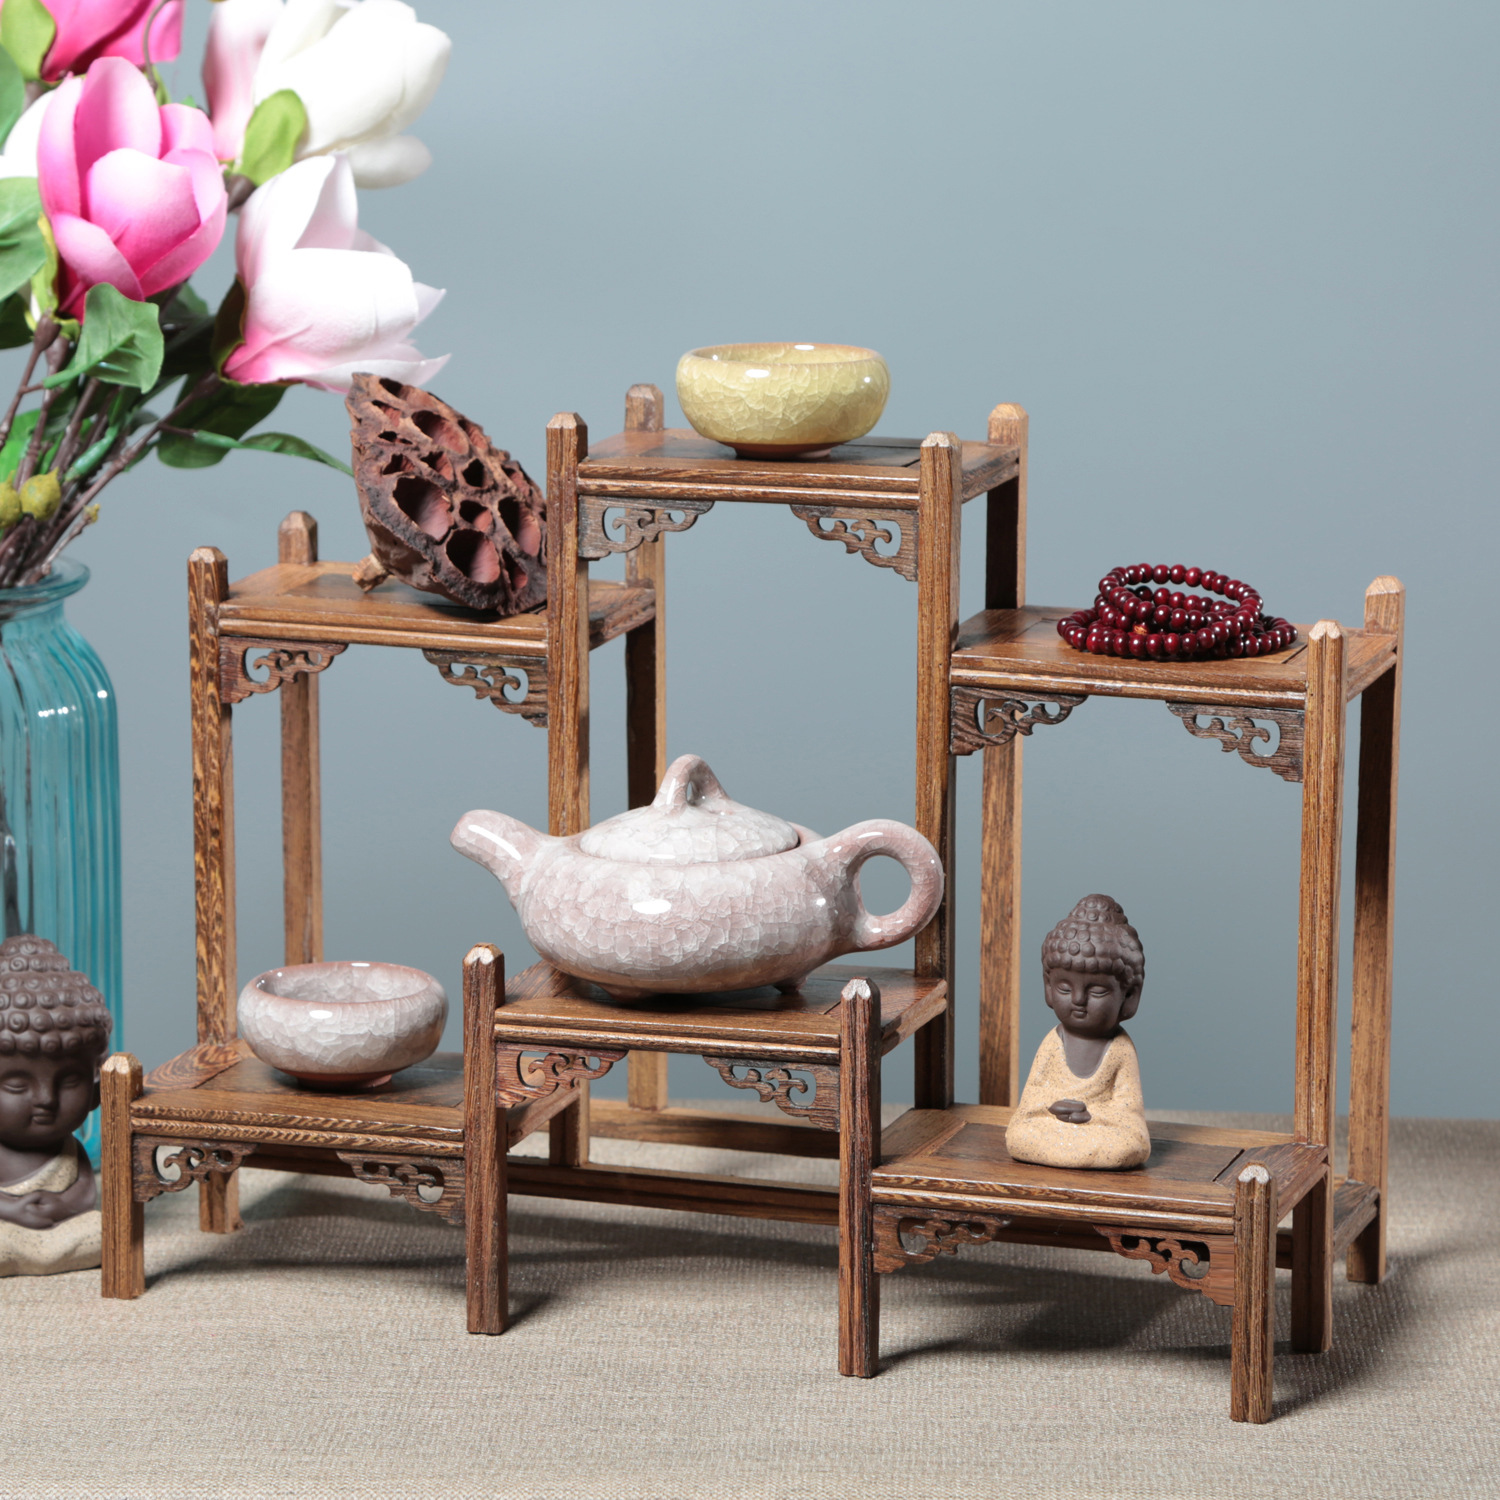 Living Room Desk Decoration Wenge Display Stand Curio Box Statues Antique Shelf Rosewood Table